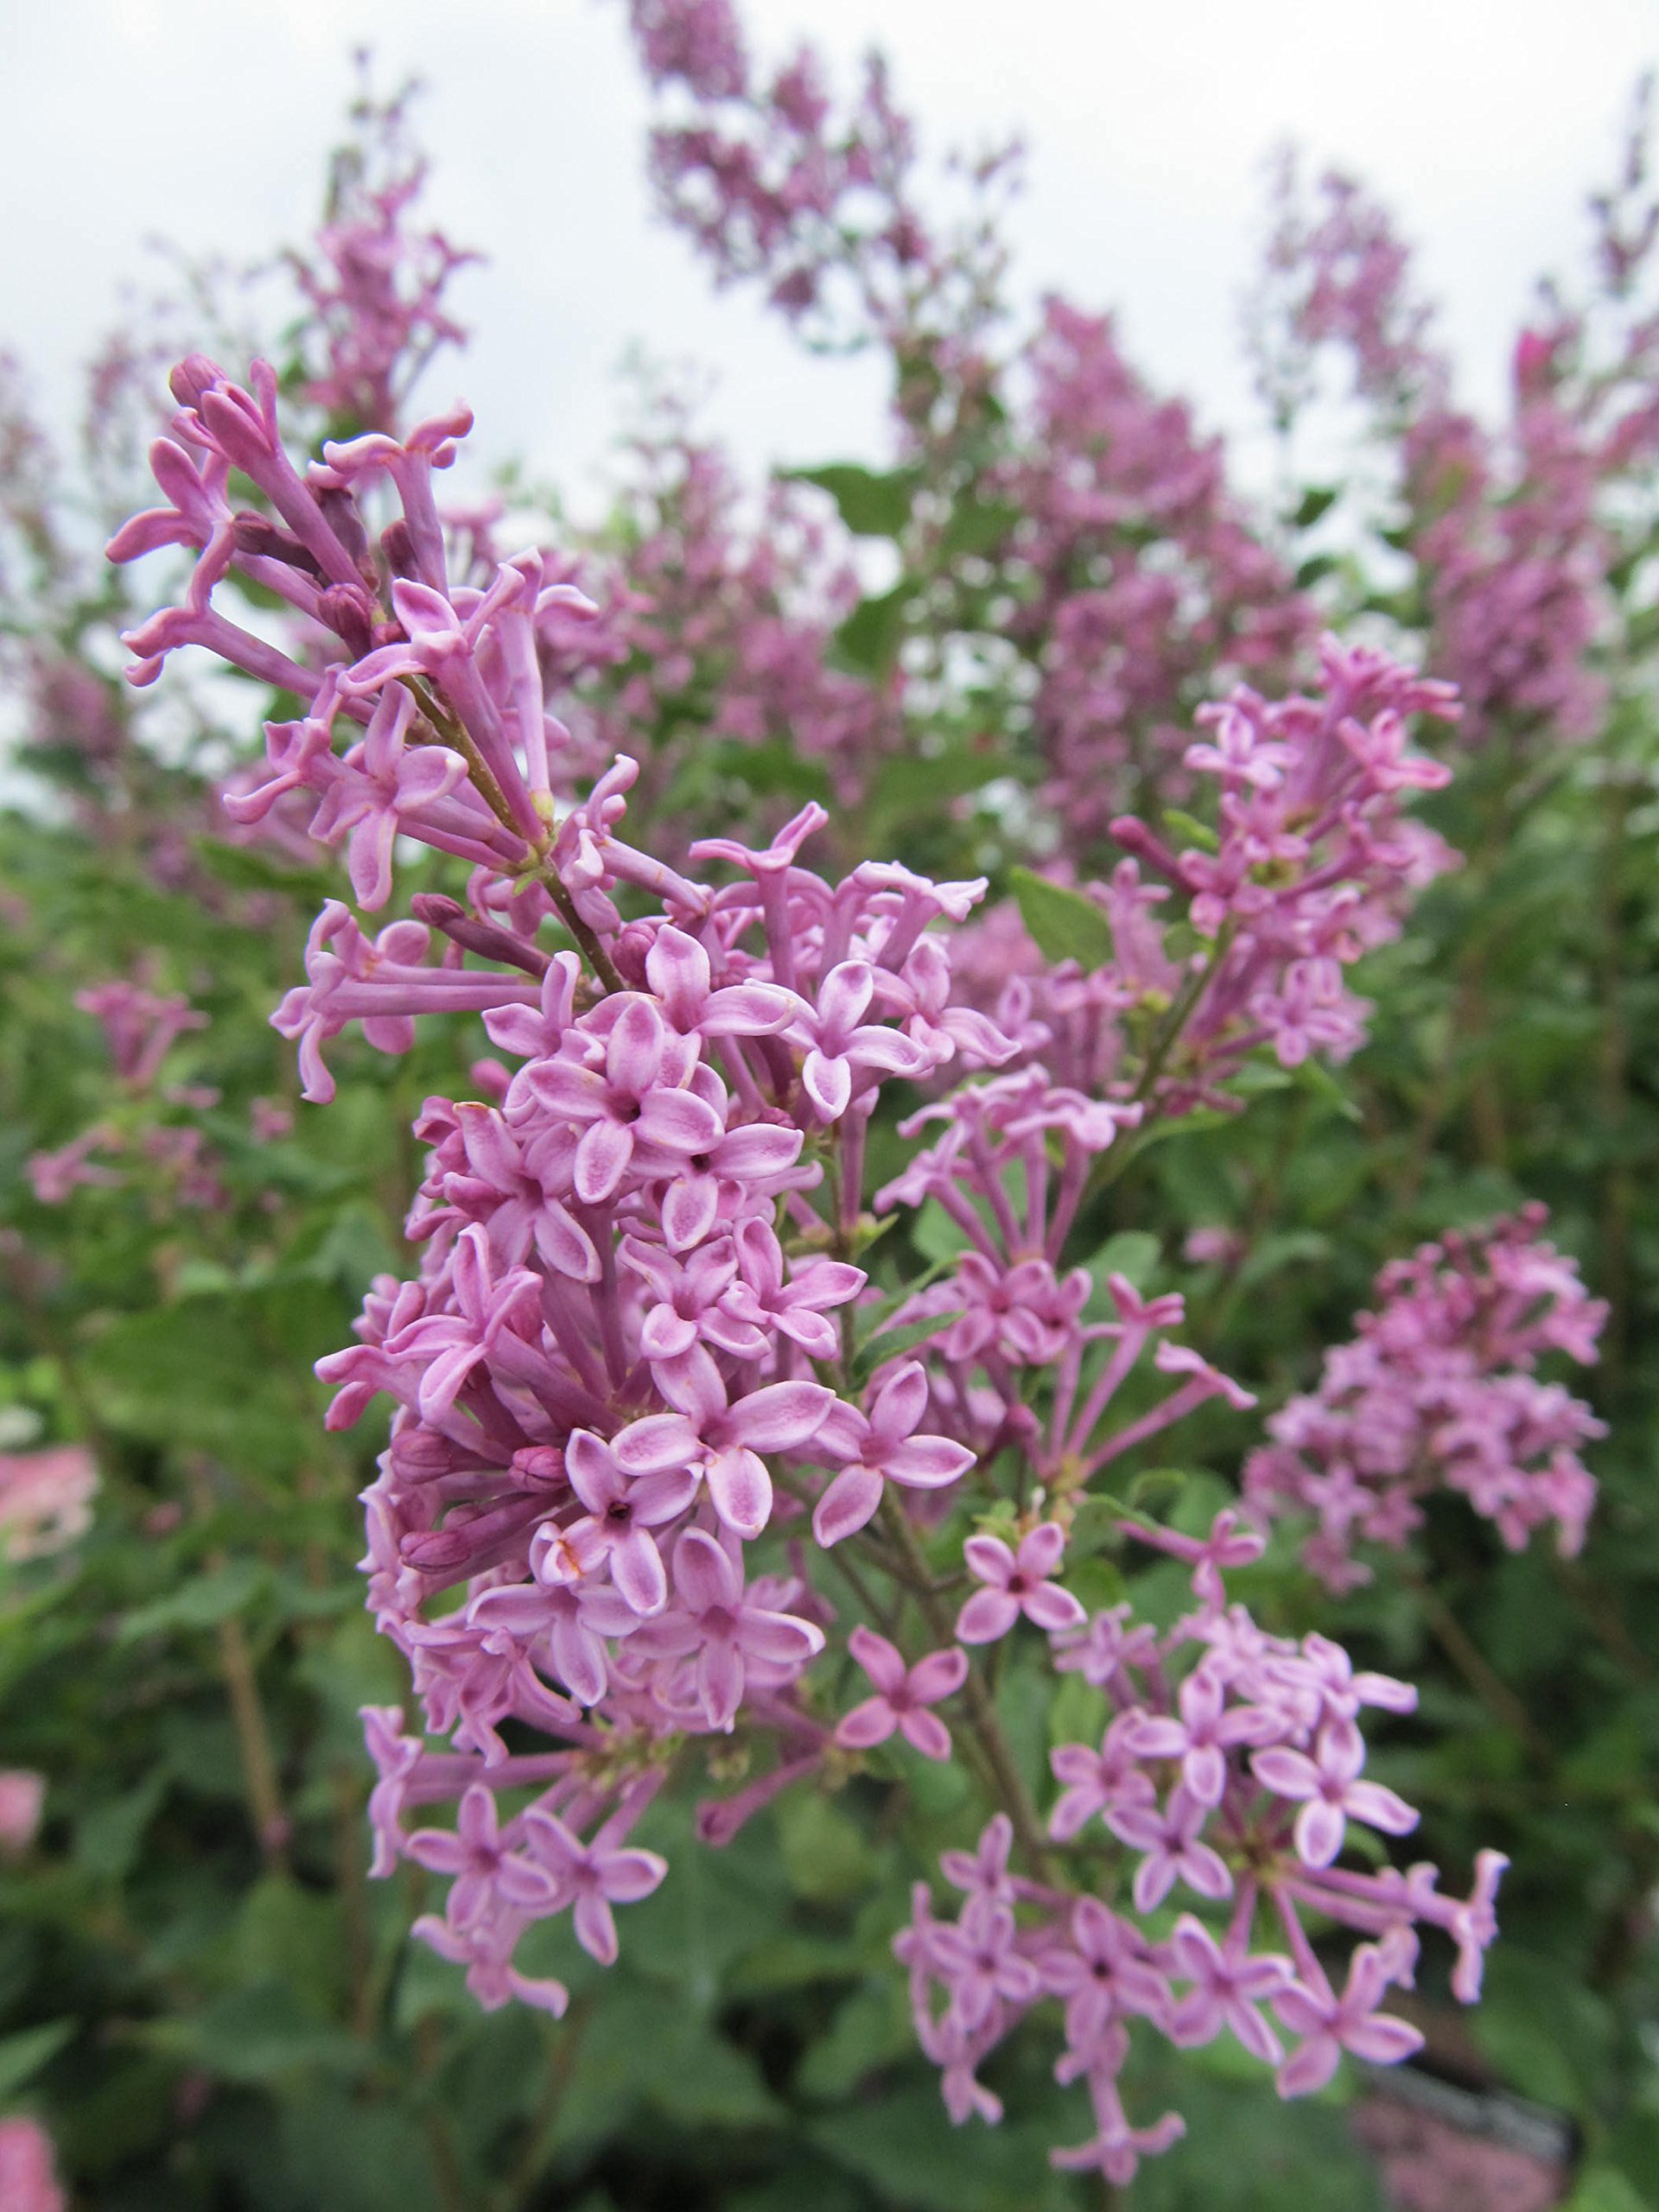 Proven Winners - Syringa x Bloomerang Purple (Reblooming Lilac) Shrub, purple flowers, #3 - Size Container by Green Promise Farms